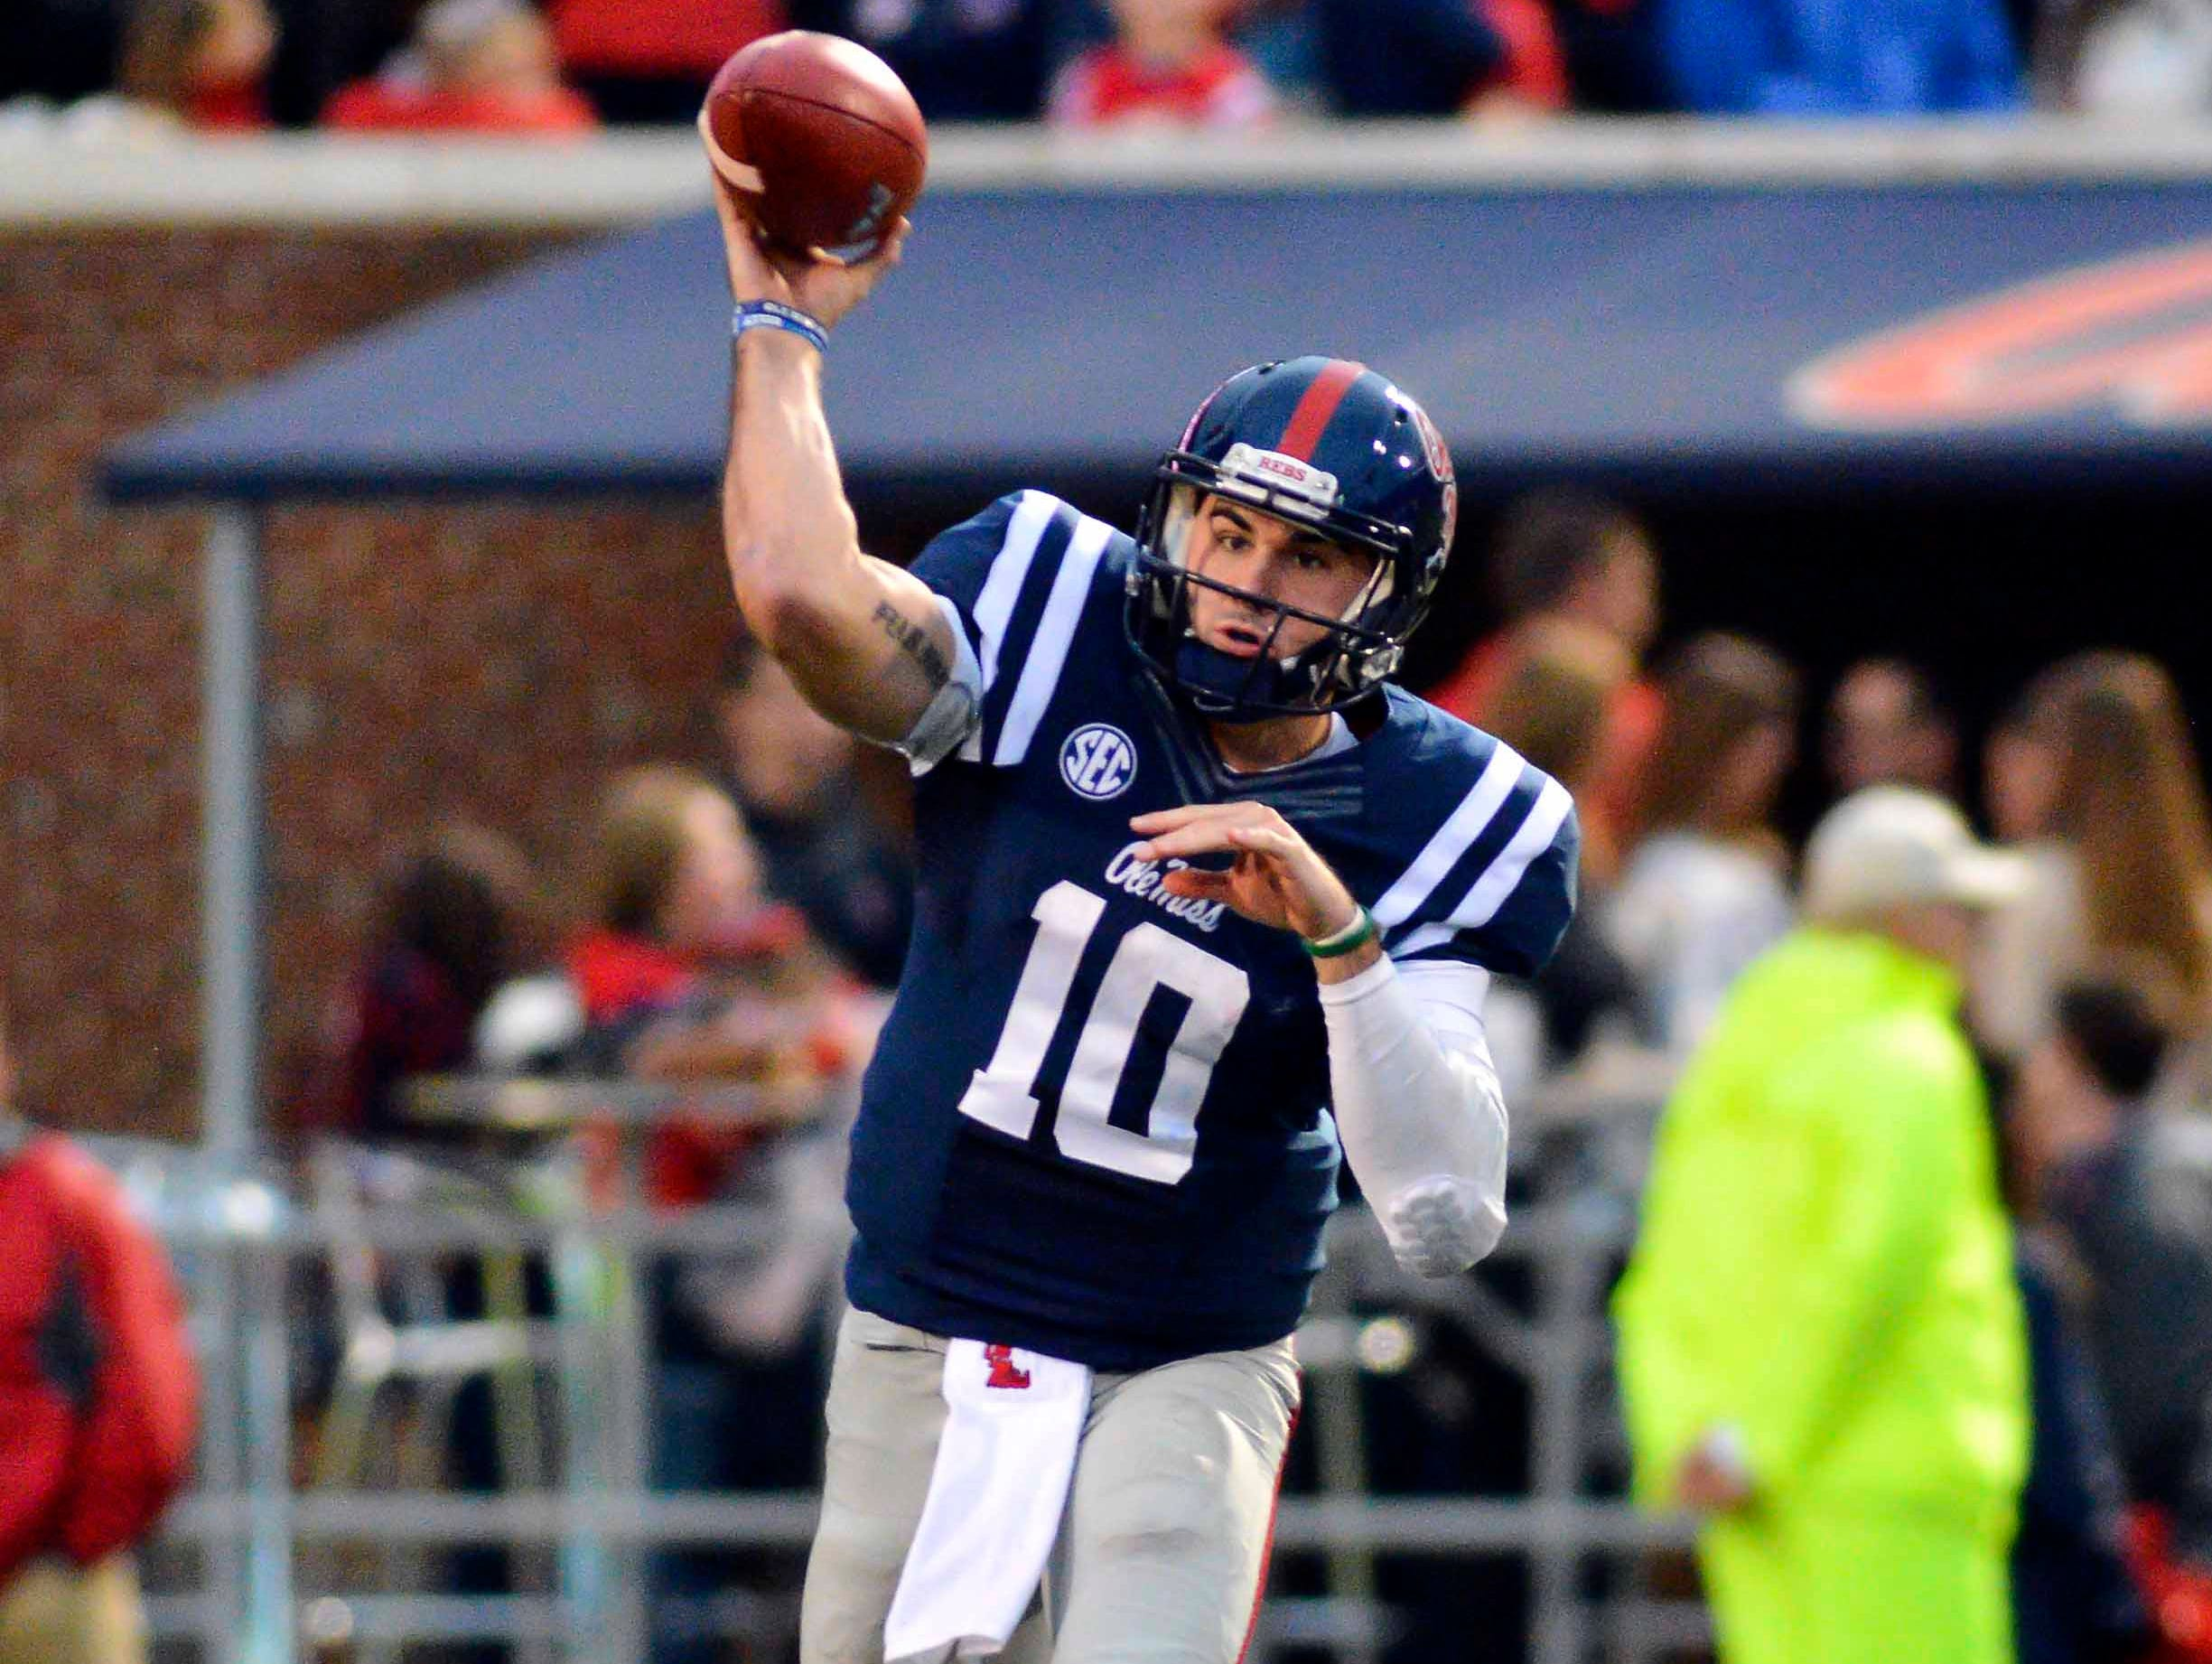 Chat about Ole Miss with beat writer Daniel Paulling at noon Wednesday on Periscope.